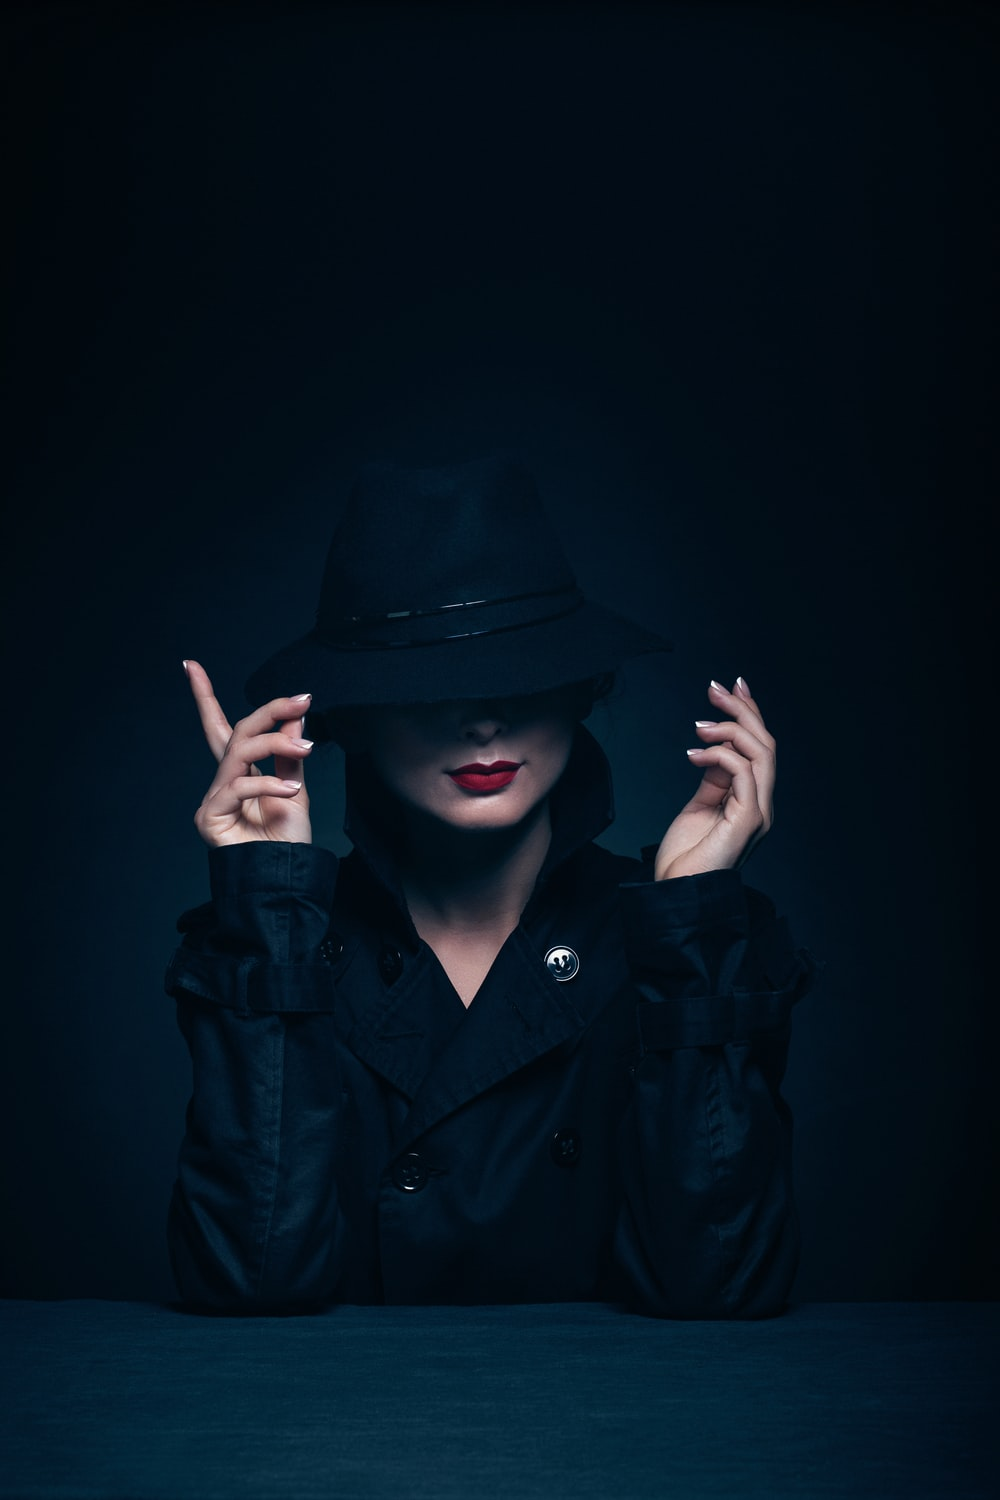 woman in black coat and hat